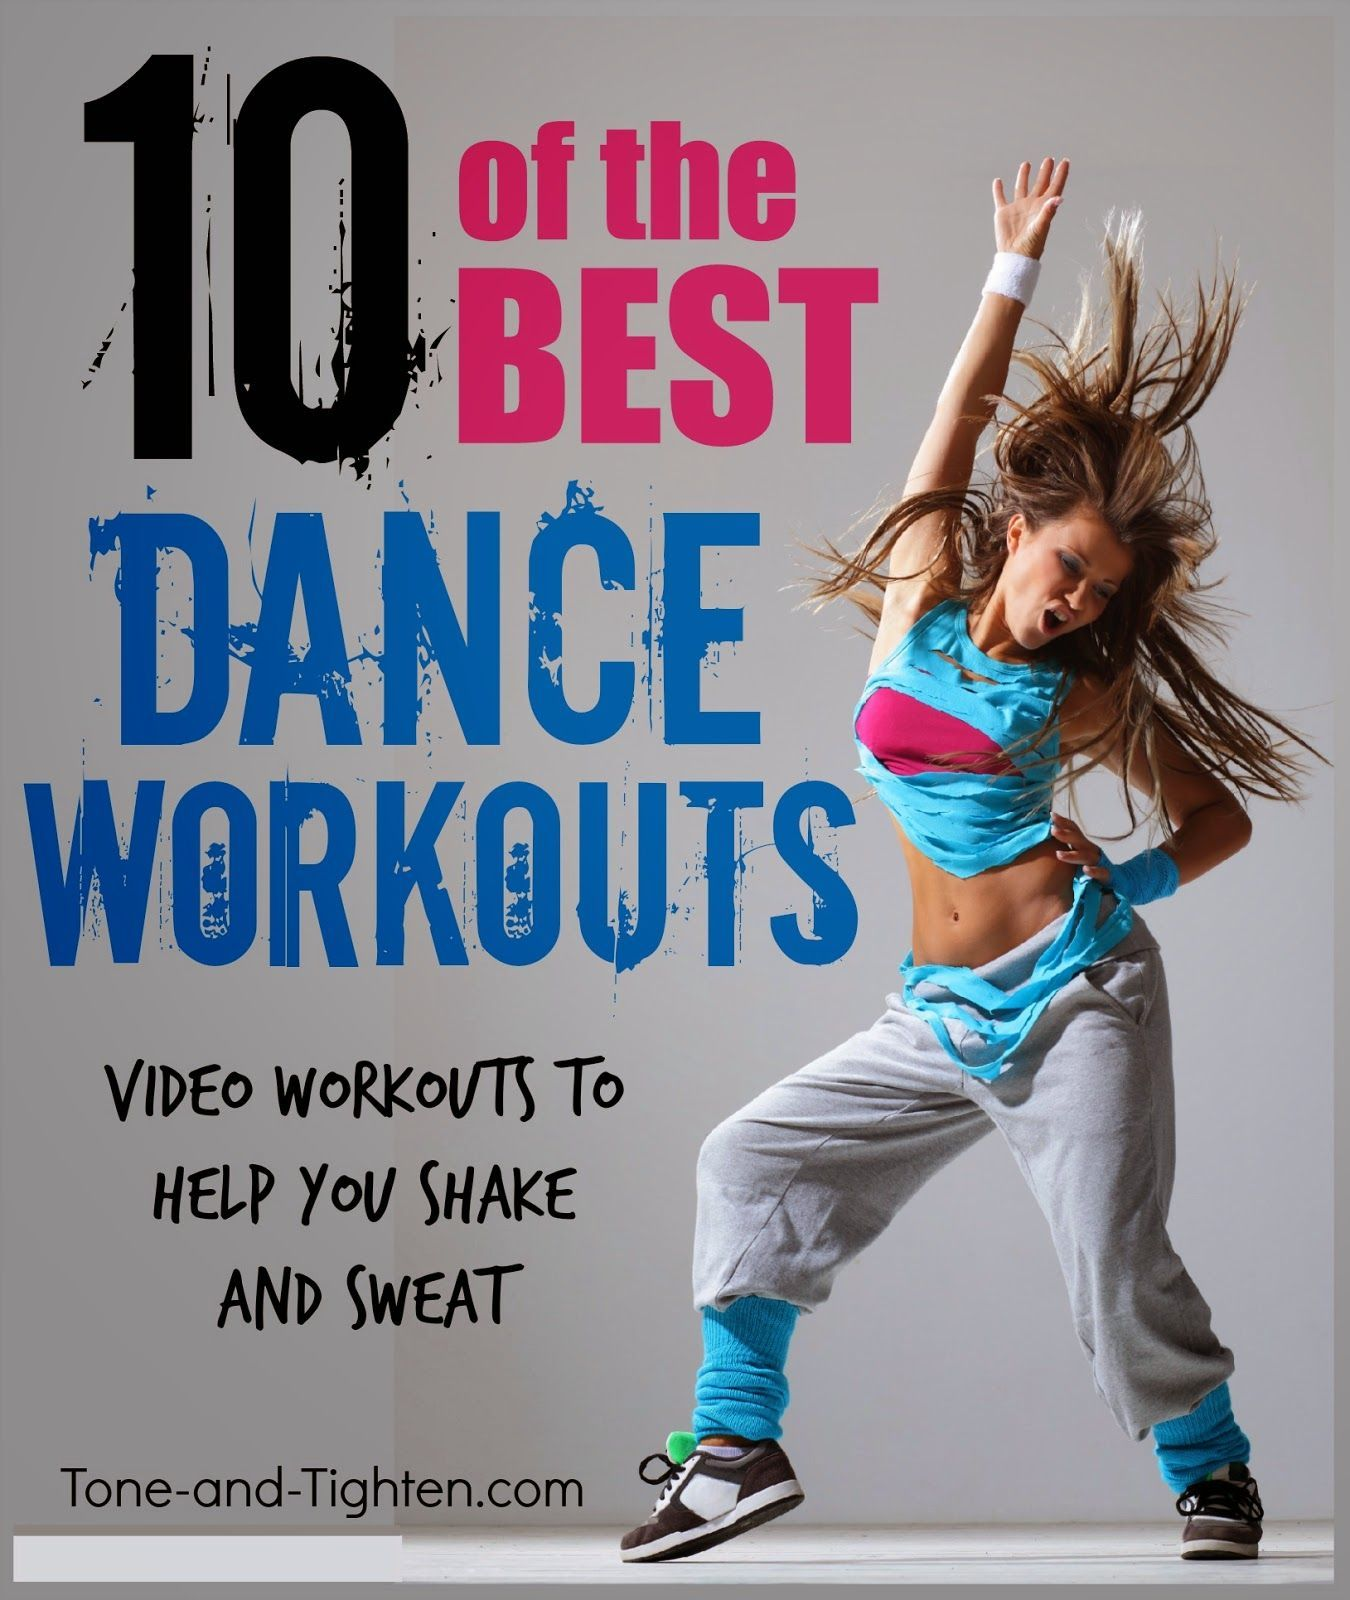 #toneandtightencom #psyched #workout #fitness #online #videos #dance #songs #video #free #best #will...